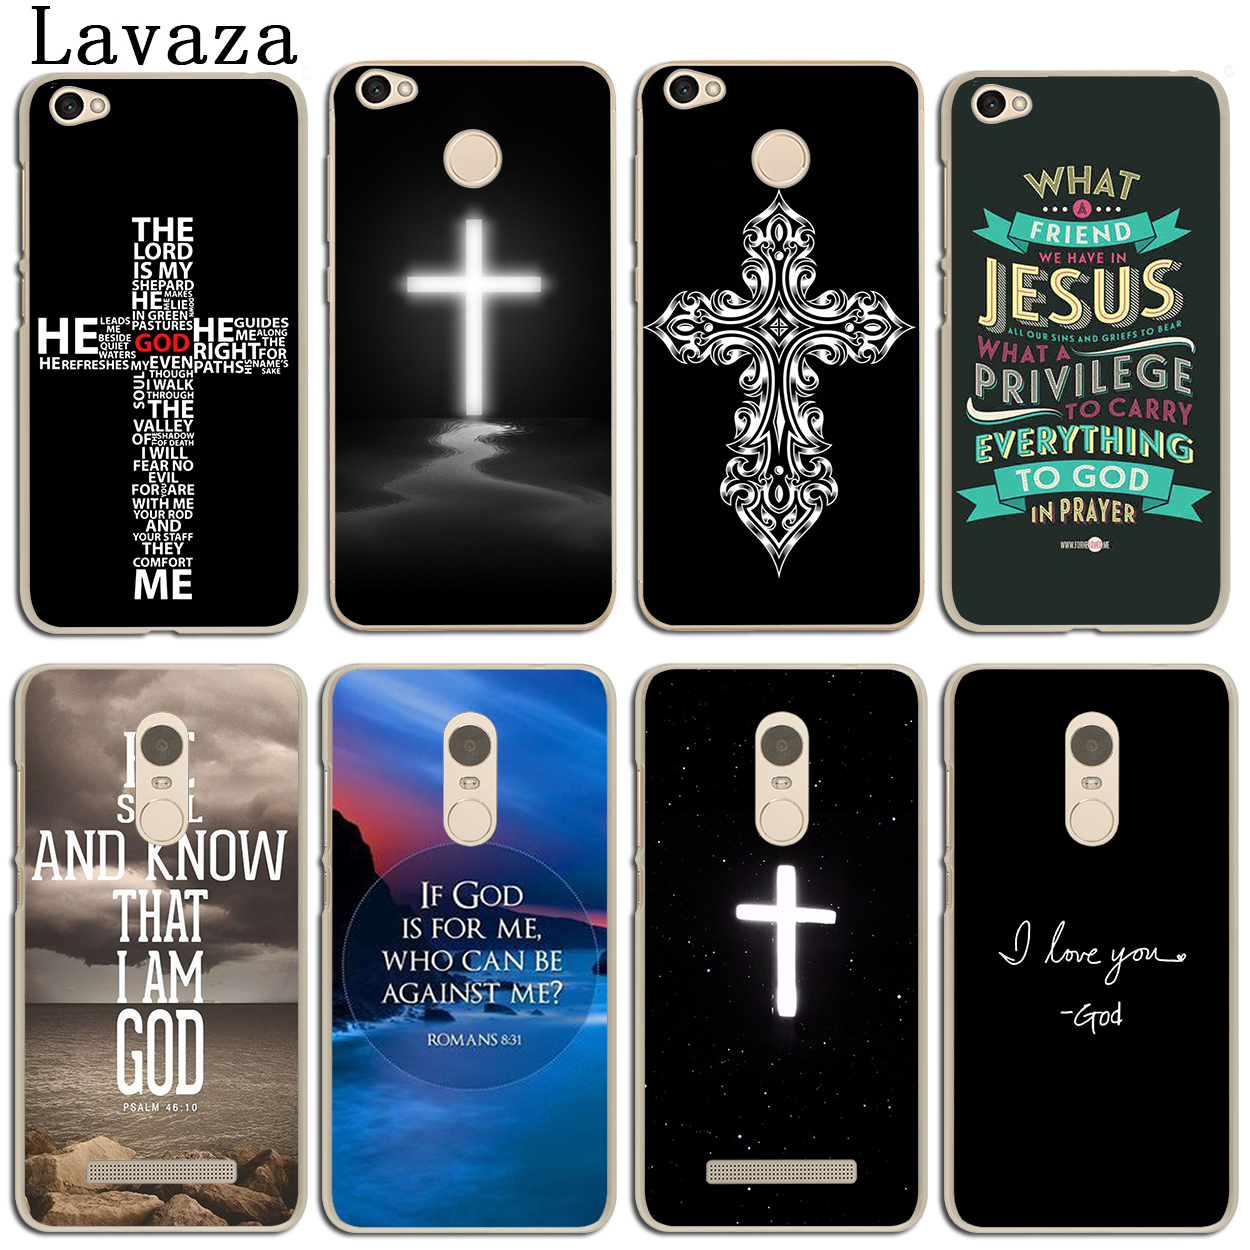 Lavaza Sun And Moon Black Silicone Case For Xiaomi Redmi 4a 4x 5a 5 Plus S2 6 6a Note 4 7 Pro Prime Wide Selection; Phone Bags & Cases